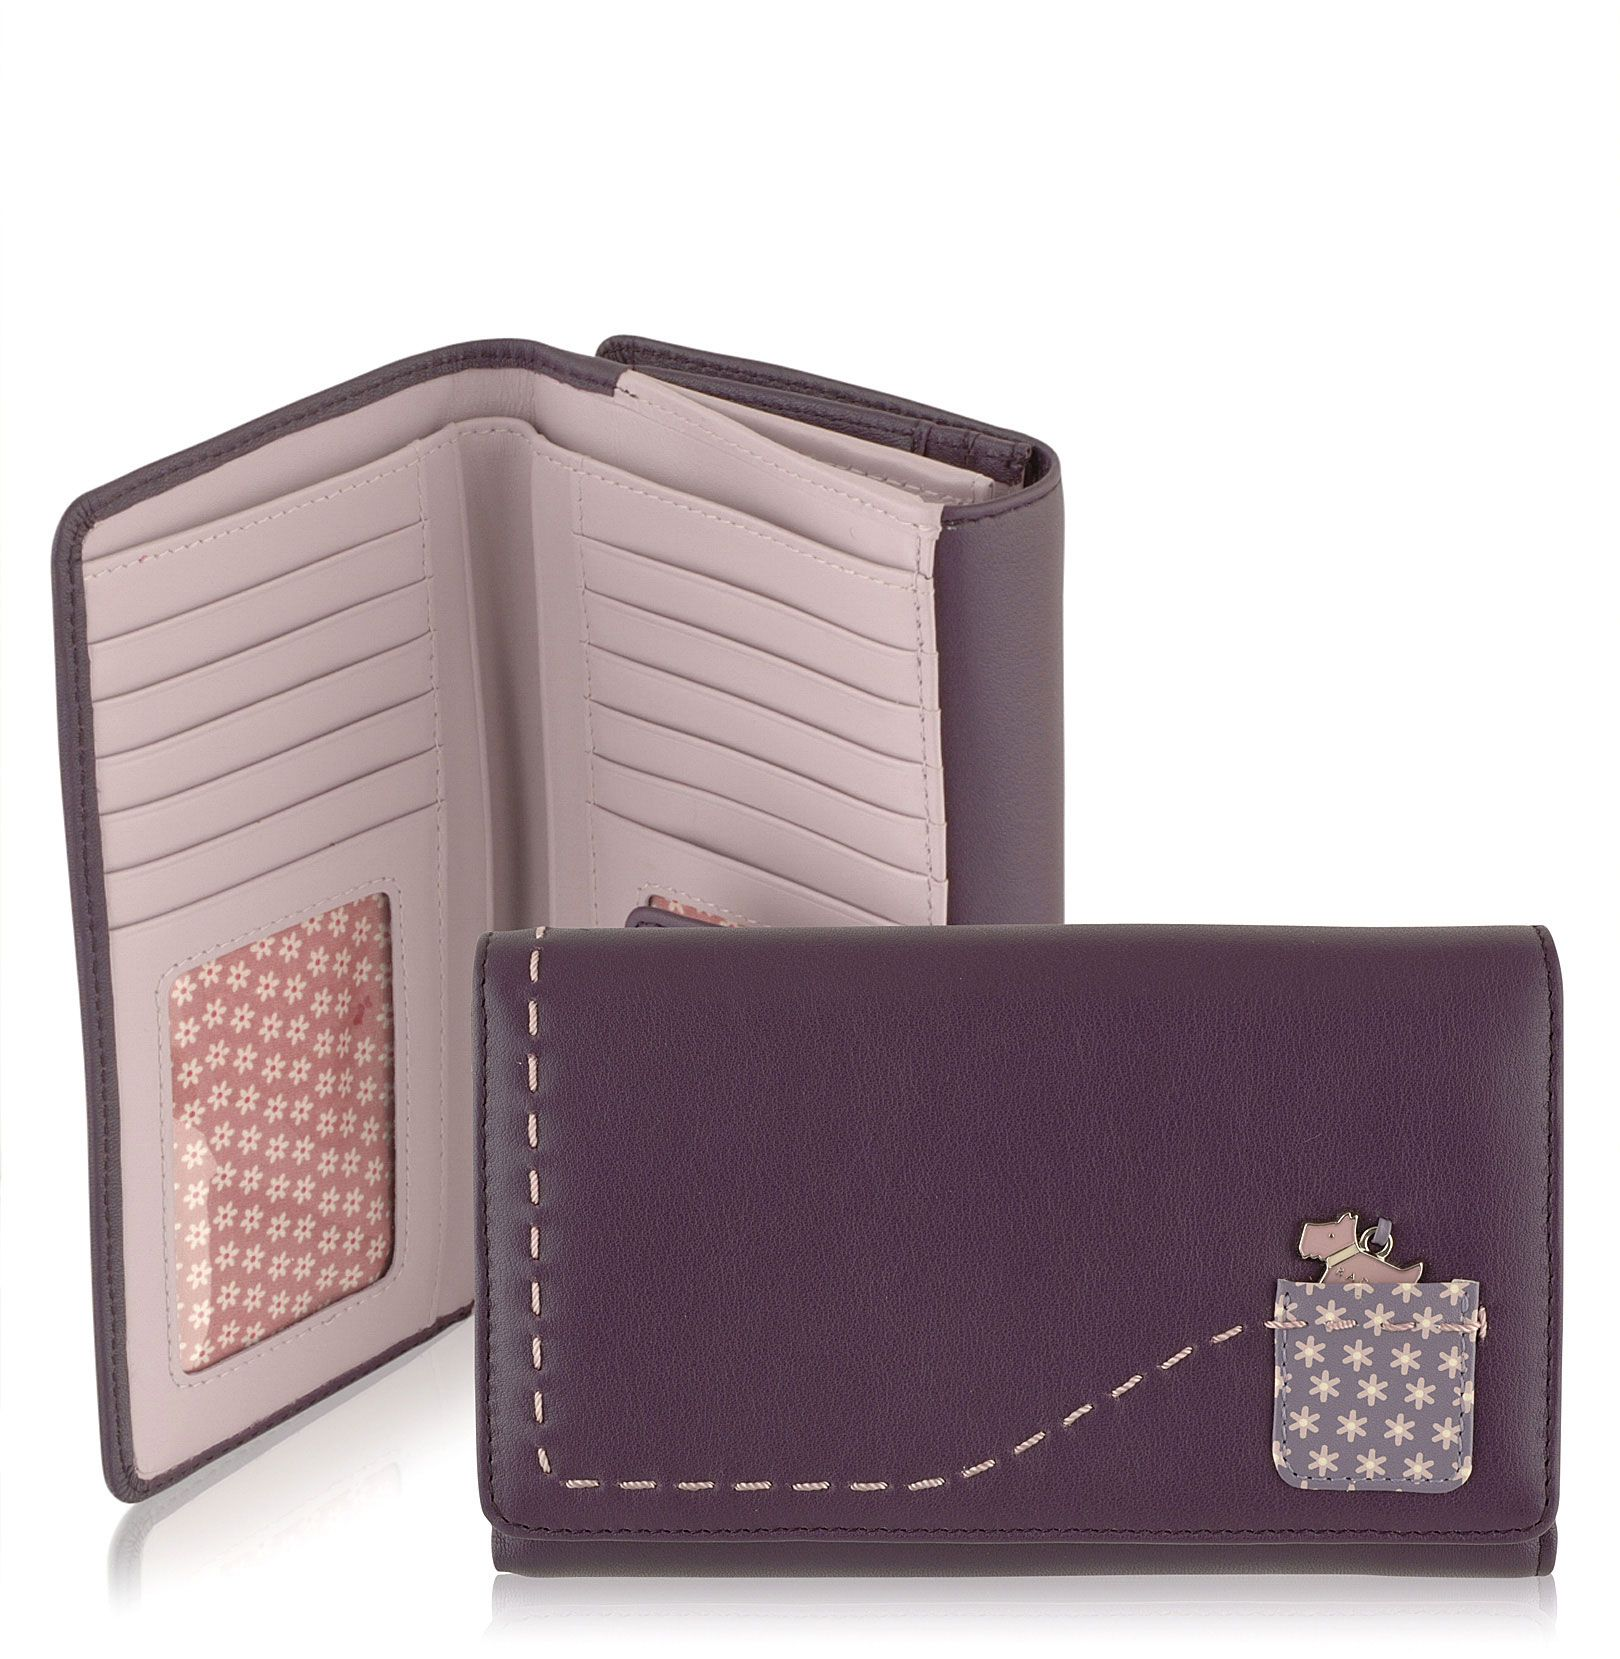 Radley Daisy large leather flapover tab wallet product image